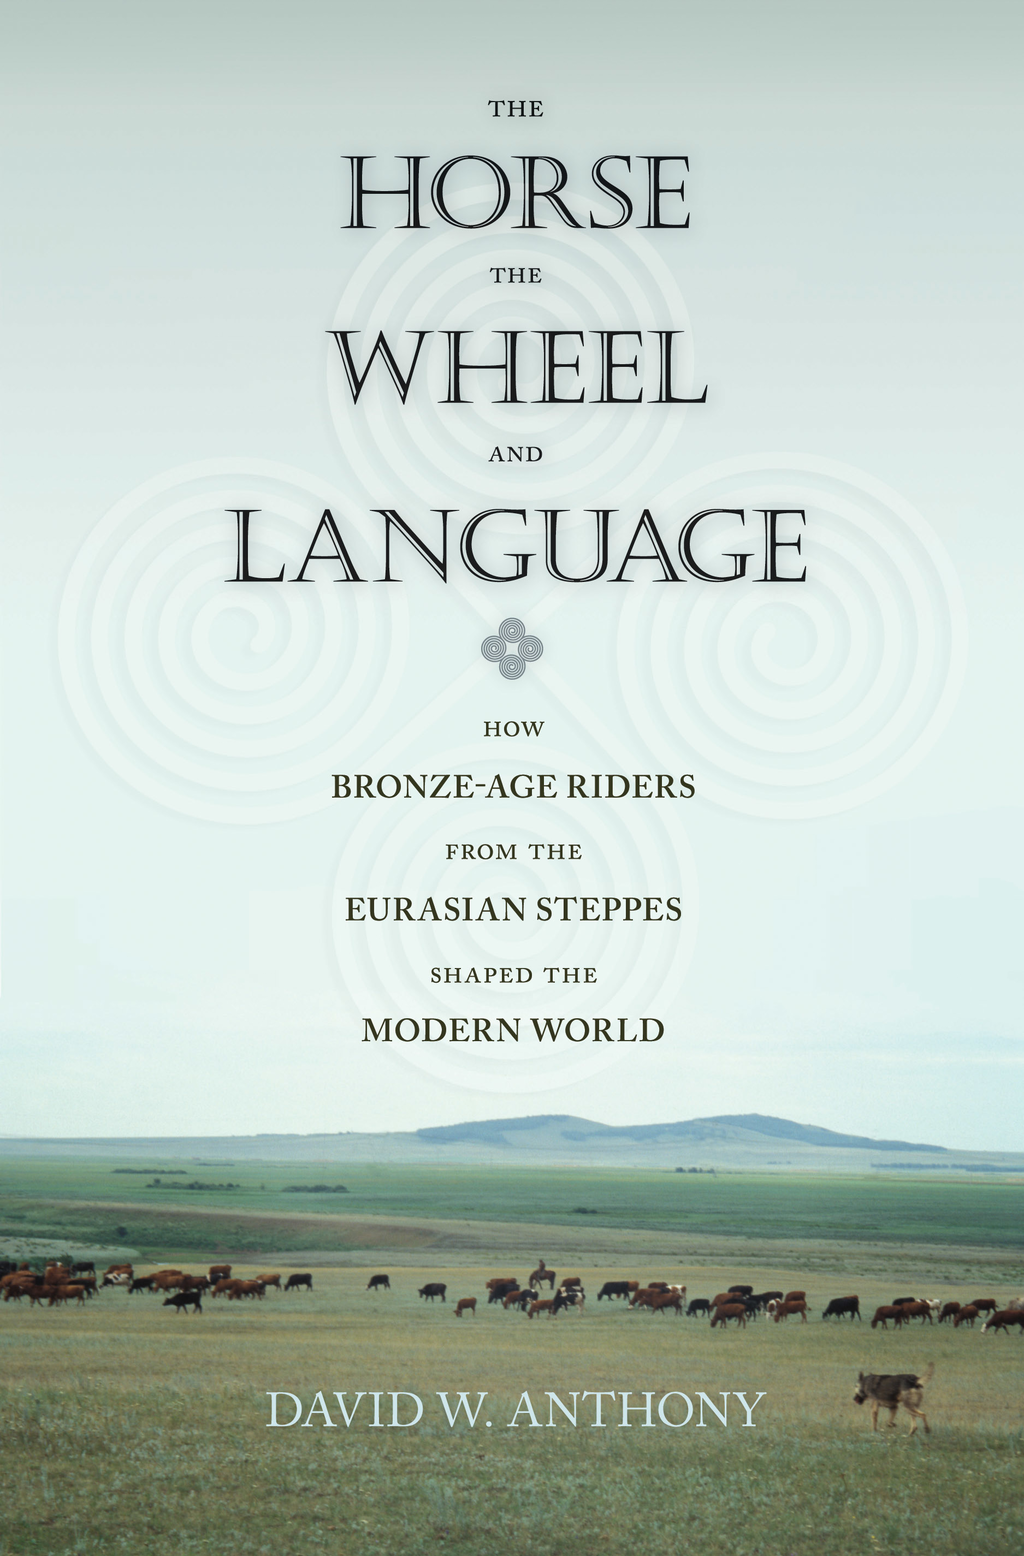 The Horse,  the Wheel,  and Language How Bronze-Age Riders from the Eurasian Steppes Shaped the Modern World